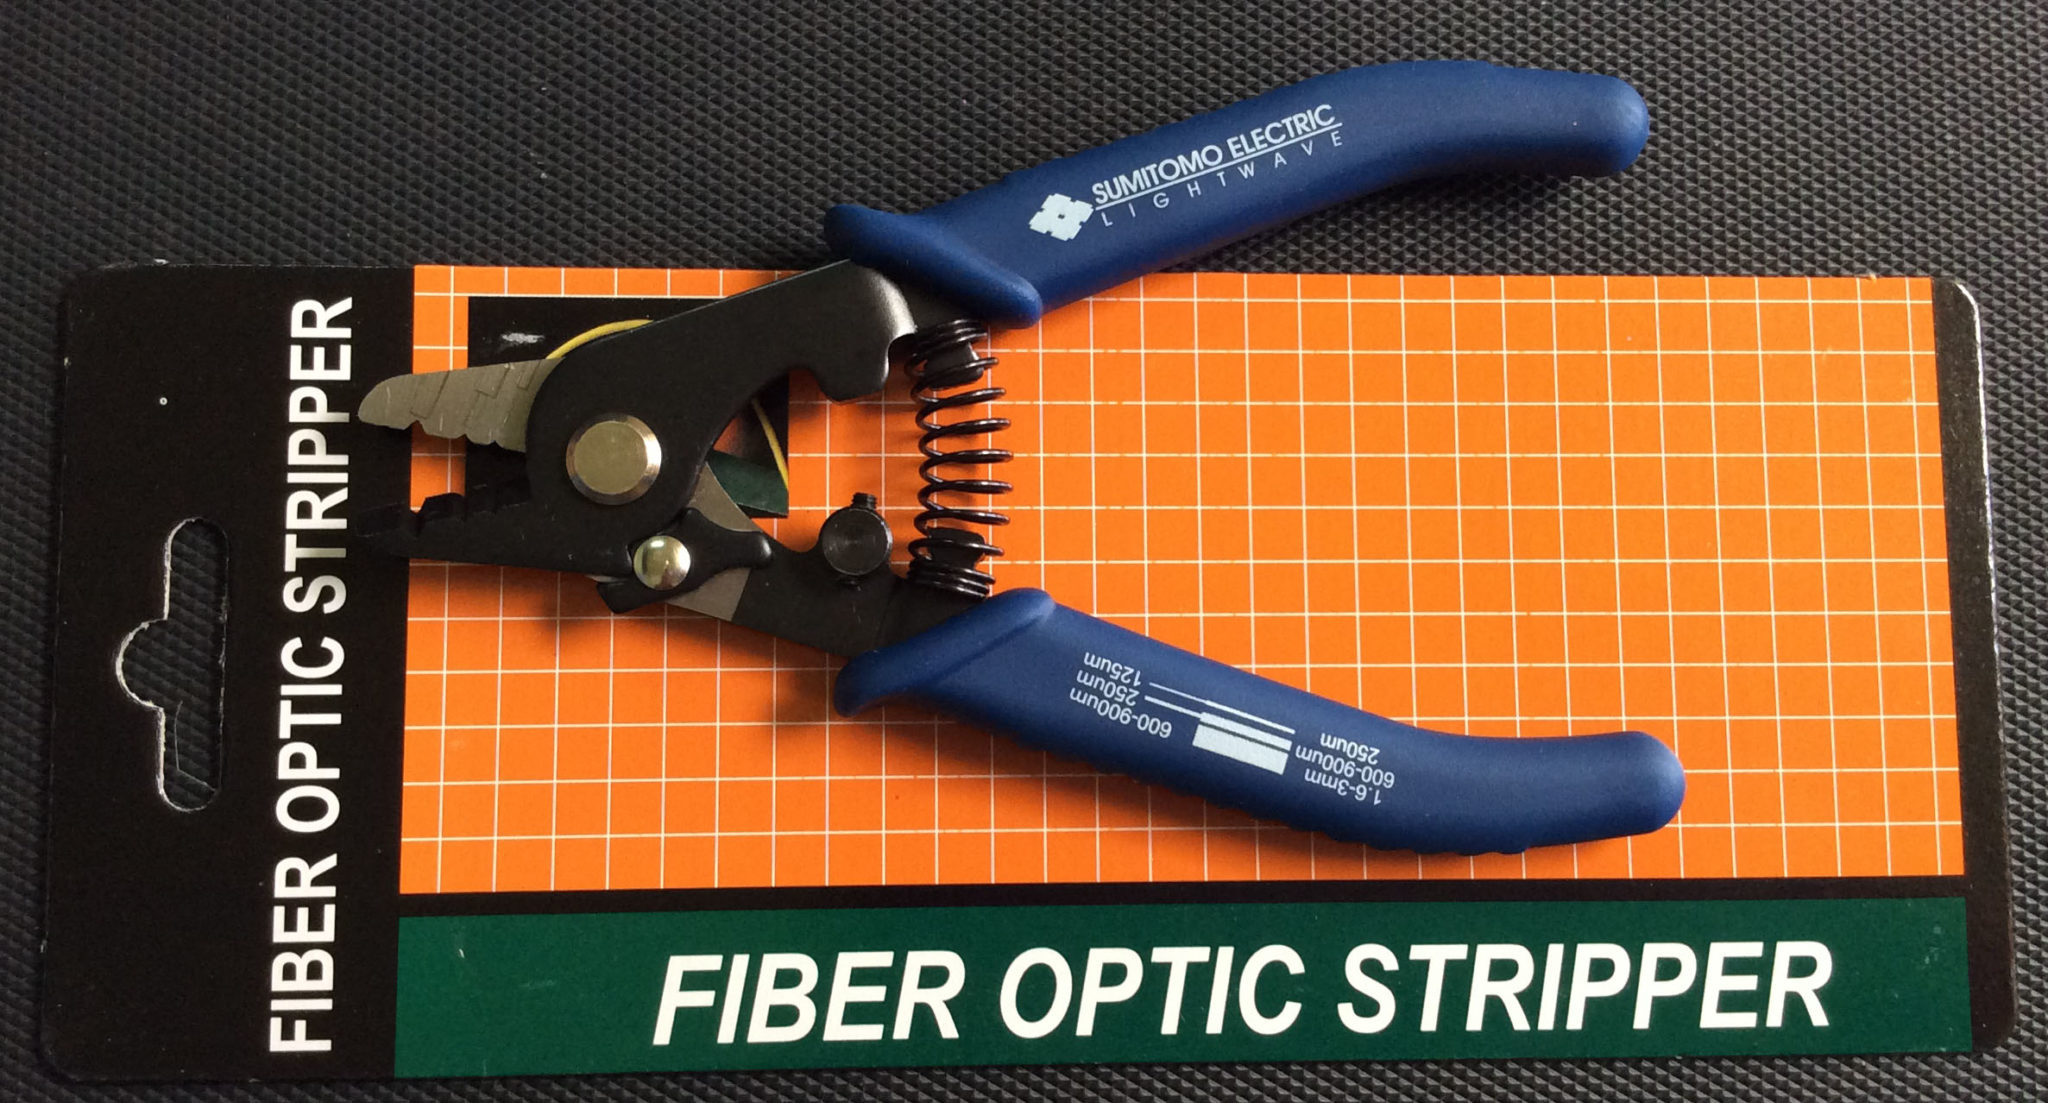 Fiber optic stripper micro ms1